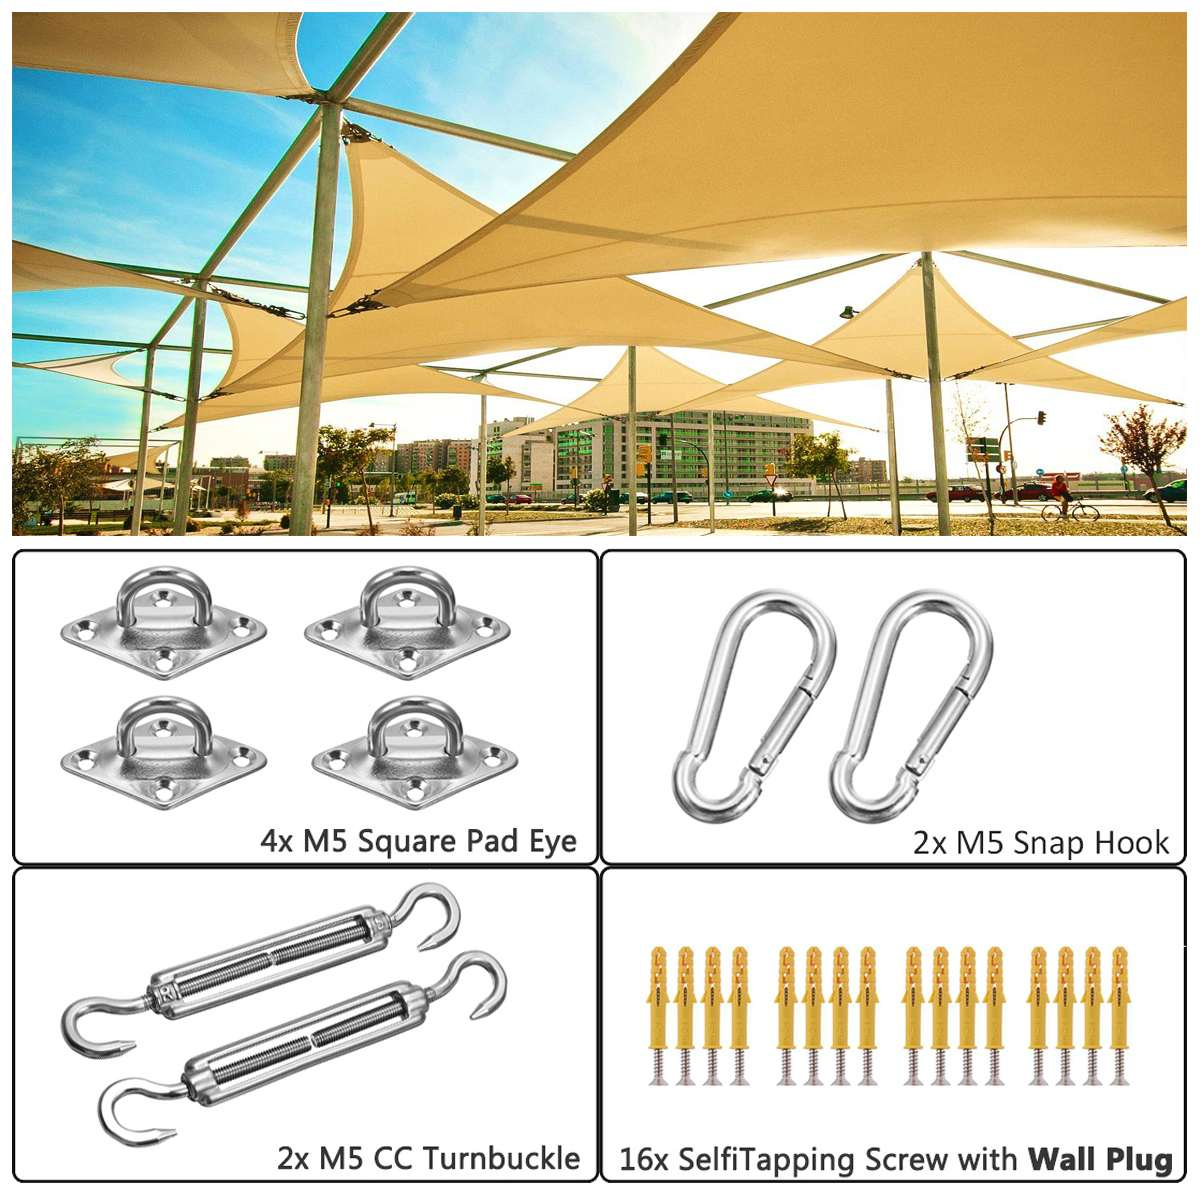 New Metal Fittings Stainless Steel Sun Sail Sun Shelter Fitting Kits Awning Special Fixed Accessories Shade Sail Accessories Sun Shelter Aliexpress